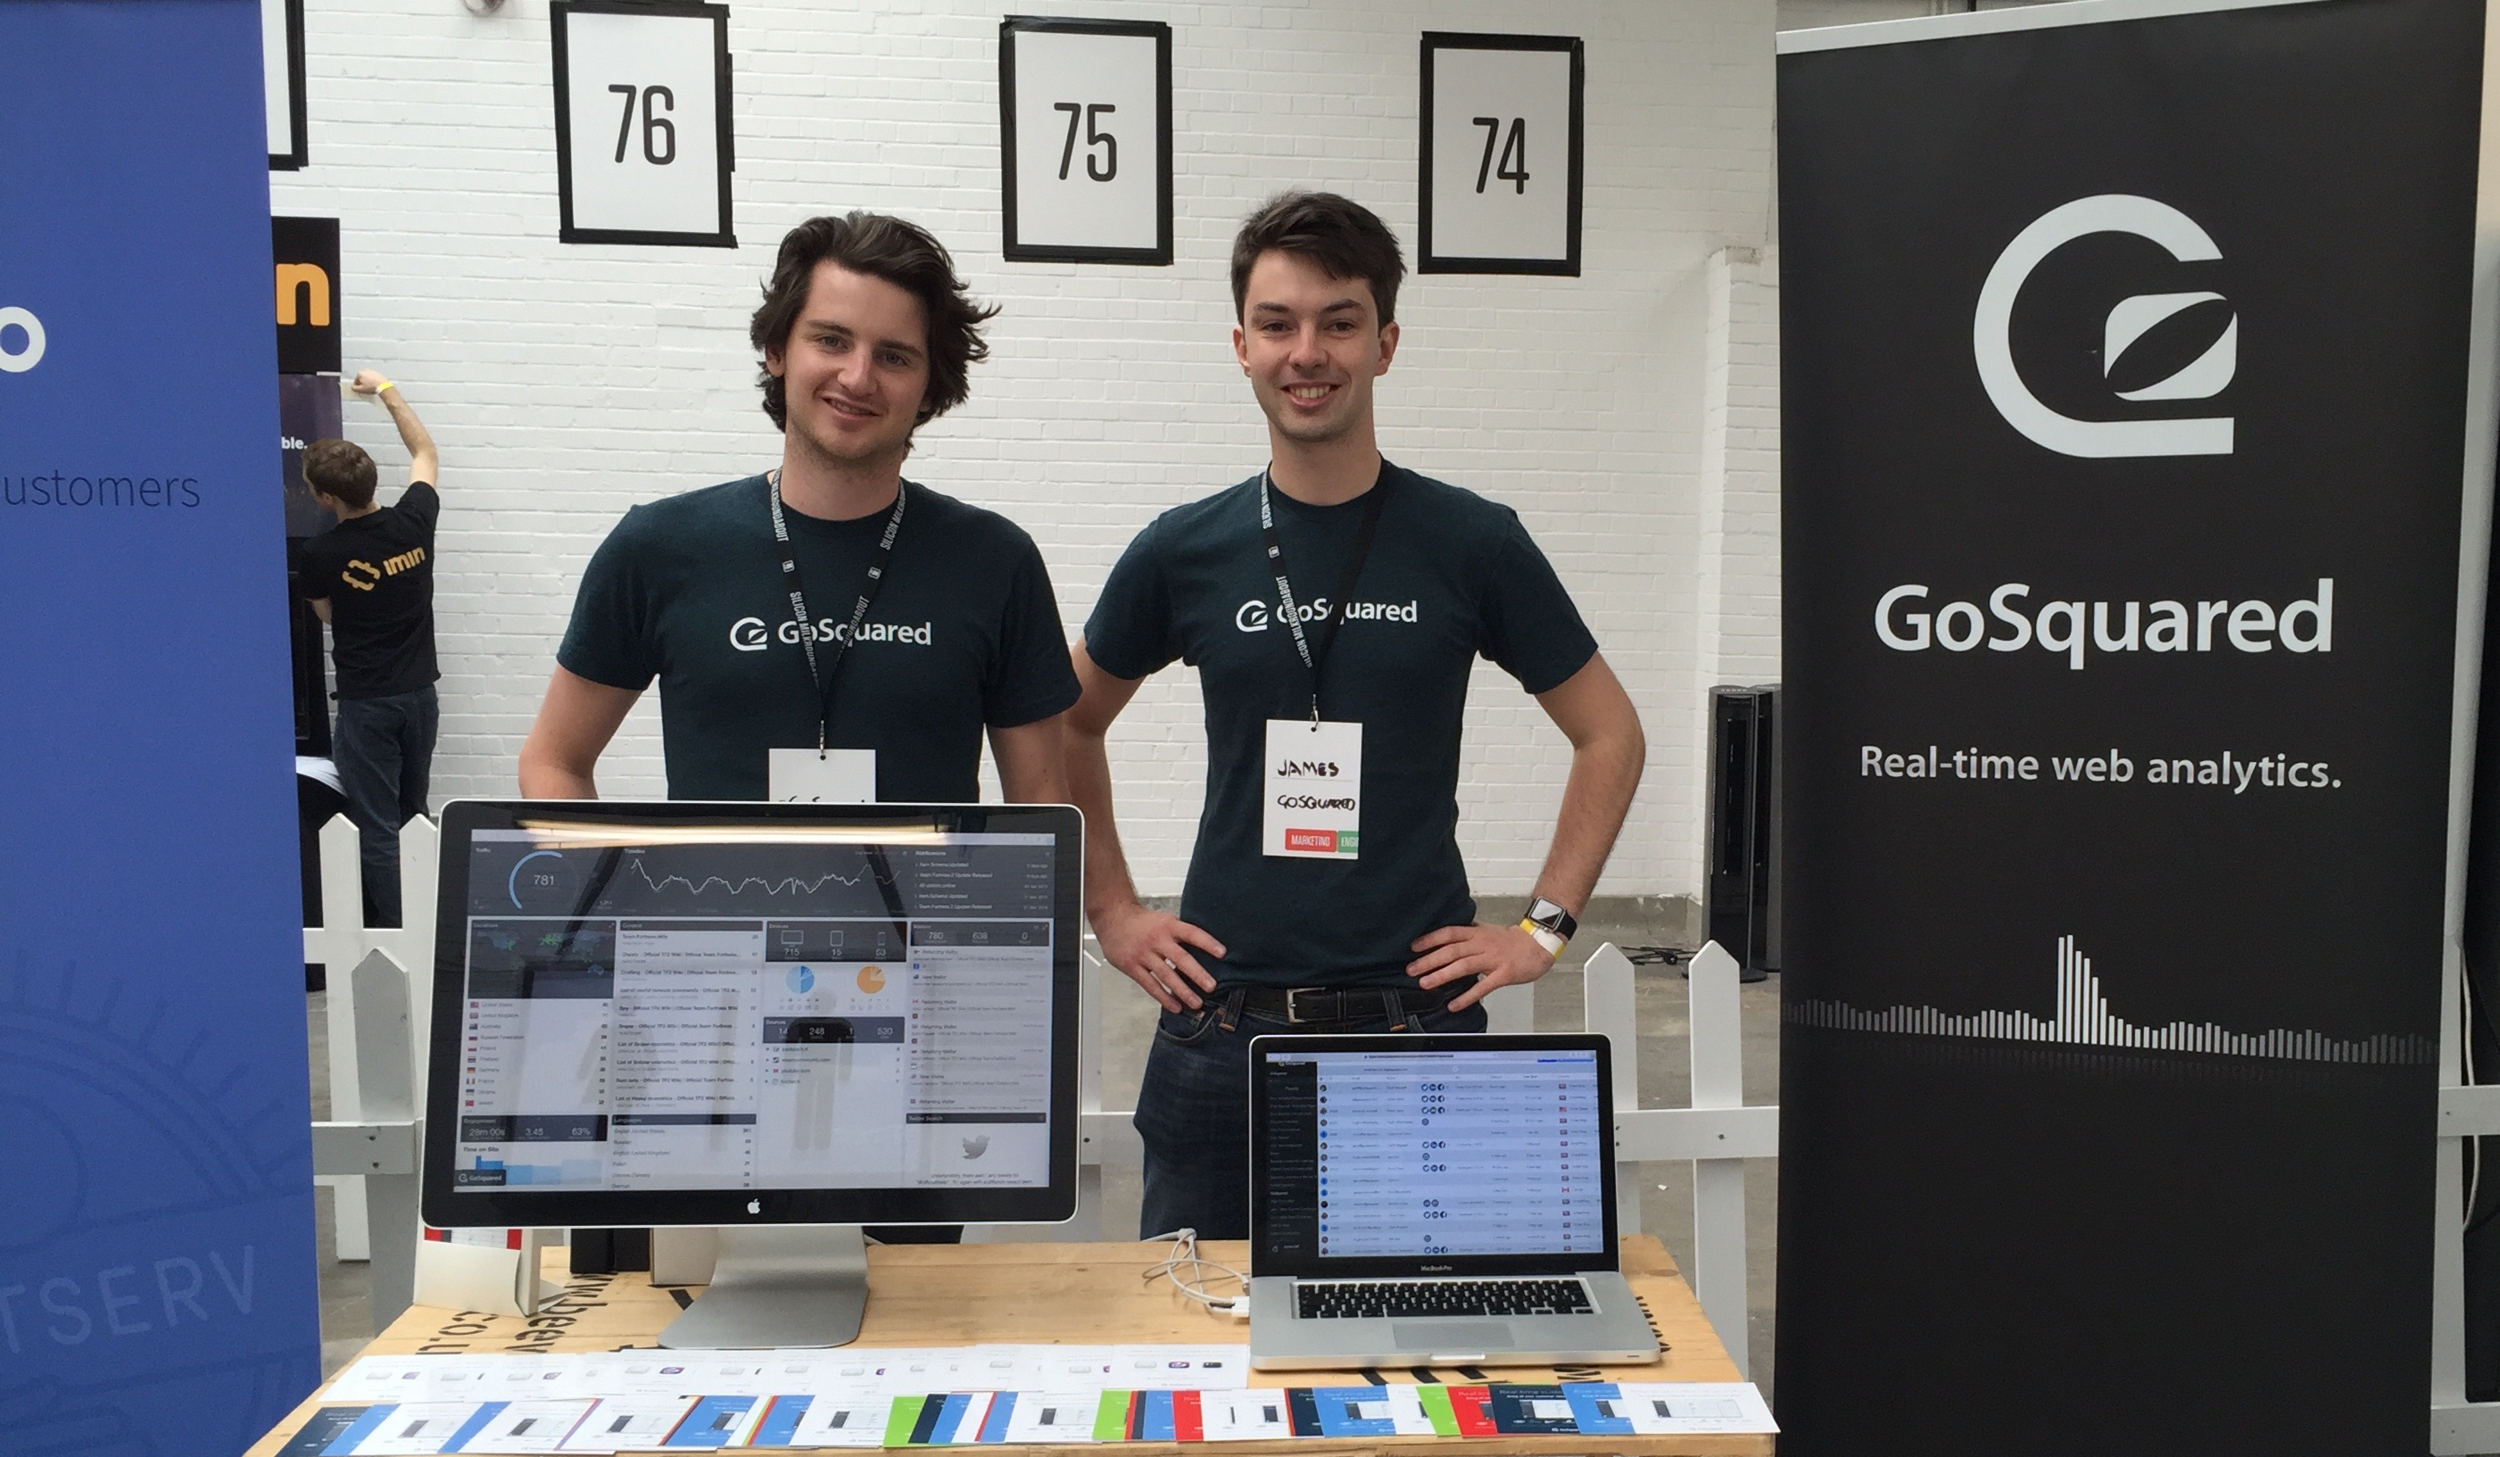 Hugh Hopkins (left) and James Gill (right)of GoSquared.